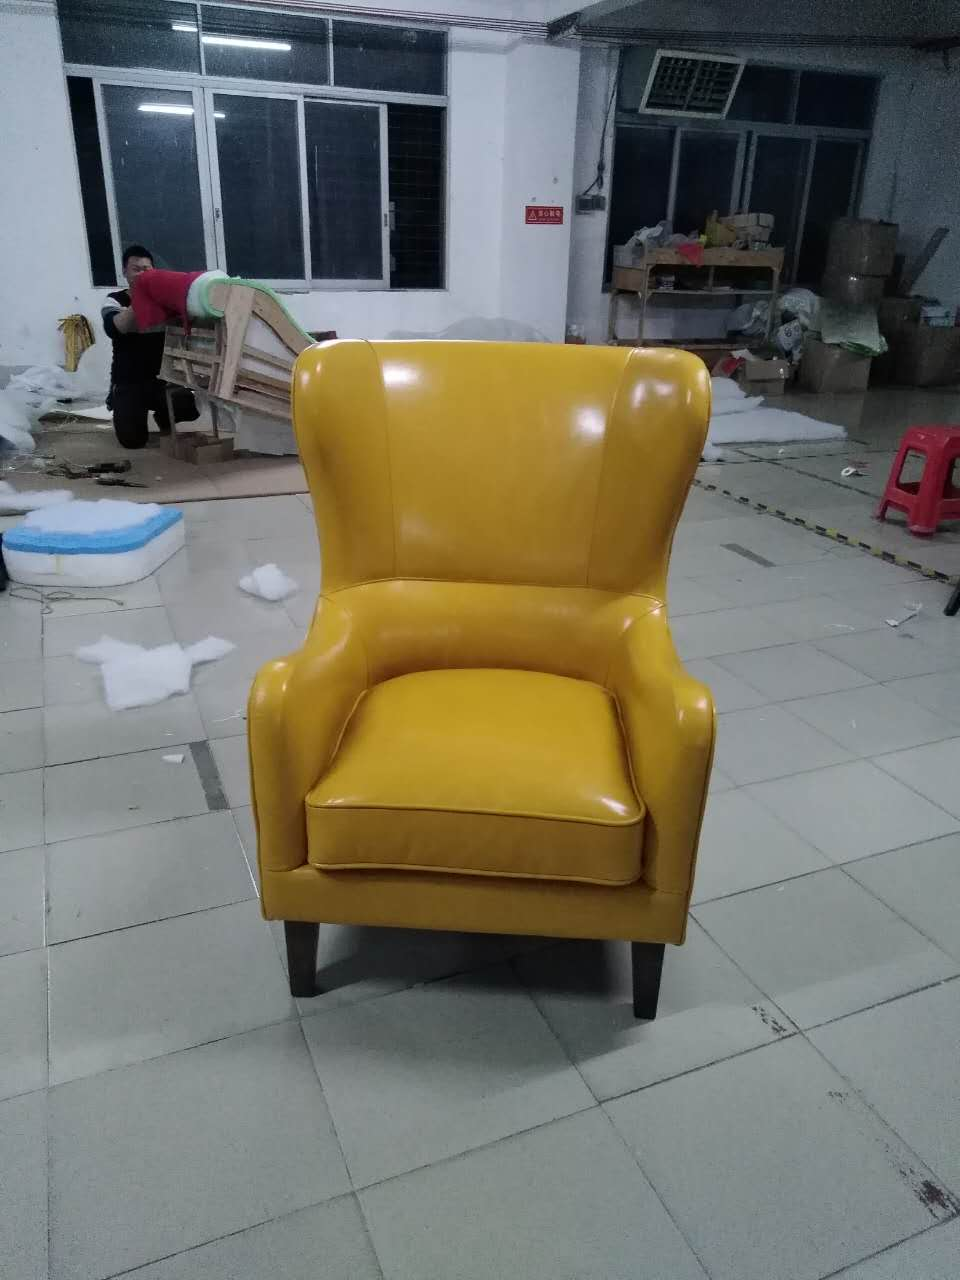 Superb Us 359 1 10 Off Cow Real Genuine Leather Sofa Living Room Chair Home Furniture Modern American Country Style Leisure Chair Shipping To Port In Dailytribune Chair Design For Home Dailytribuneorg